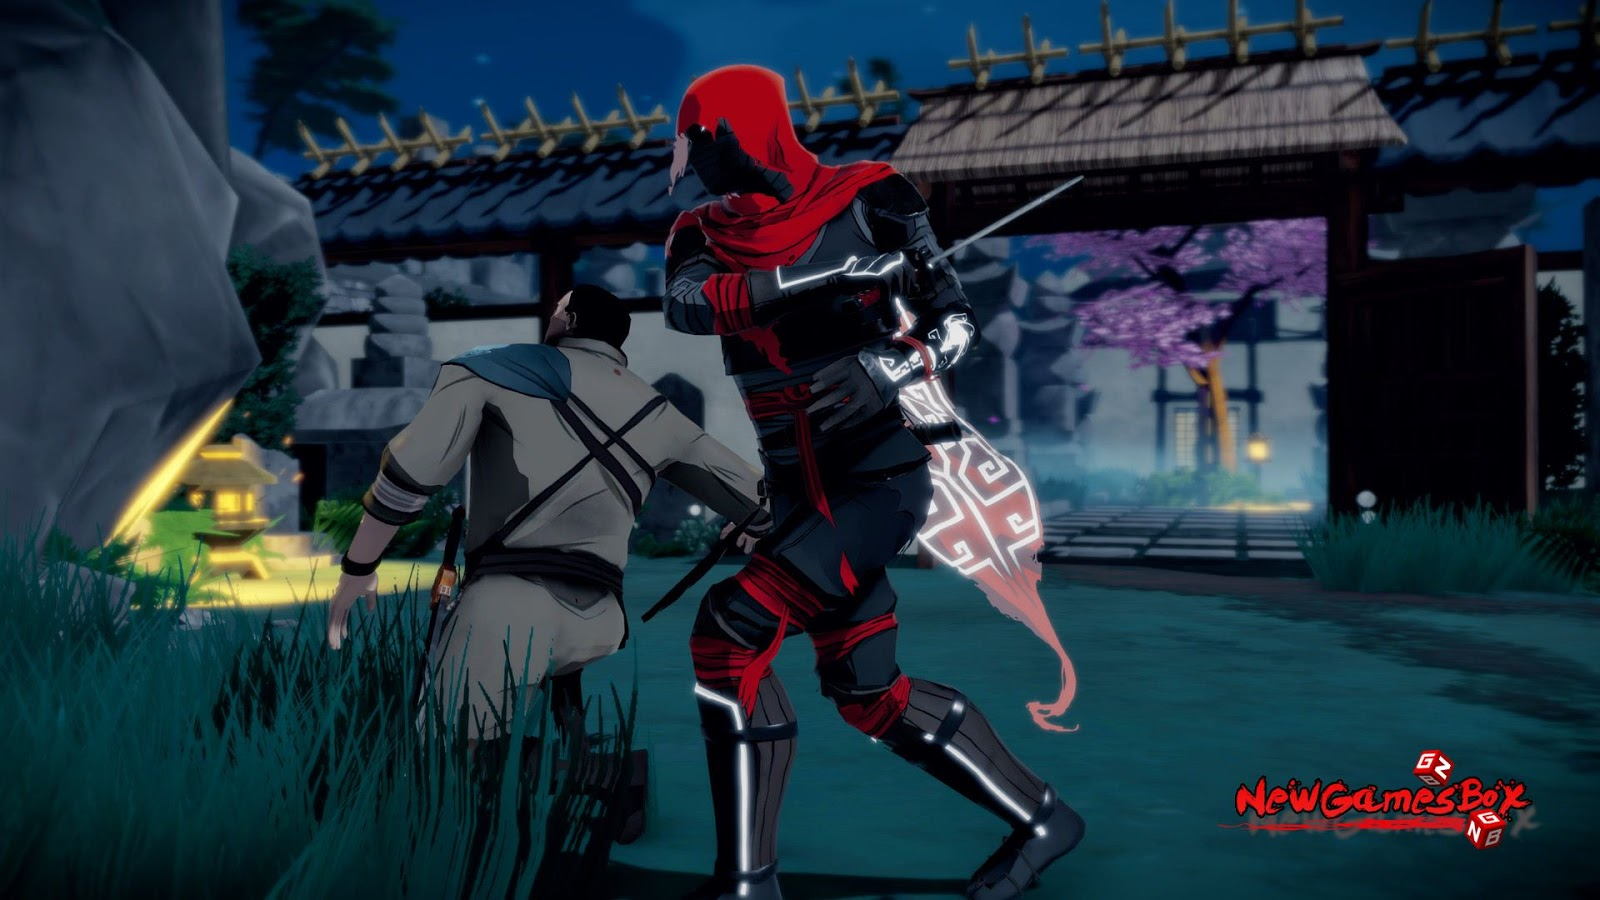 A Game For Free : Aragami pc game free download